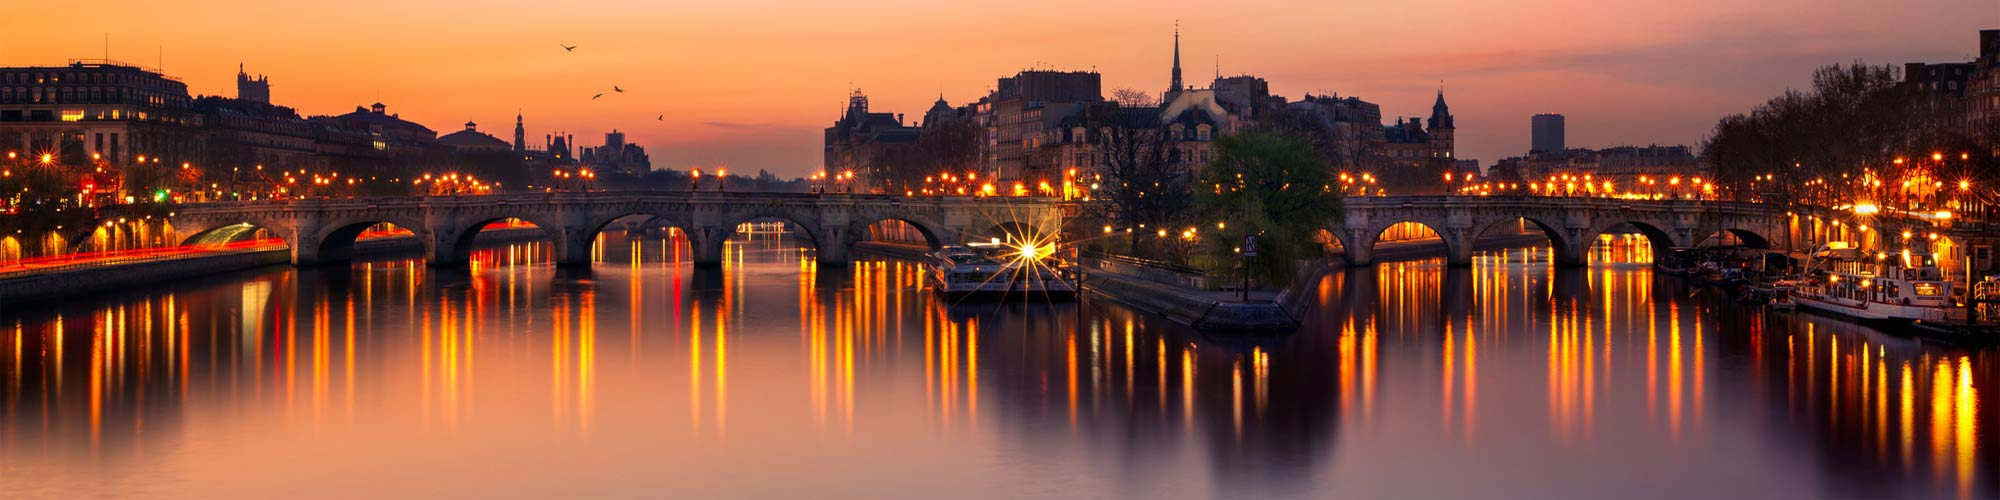 View of the Seine river at sunset